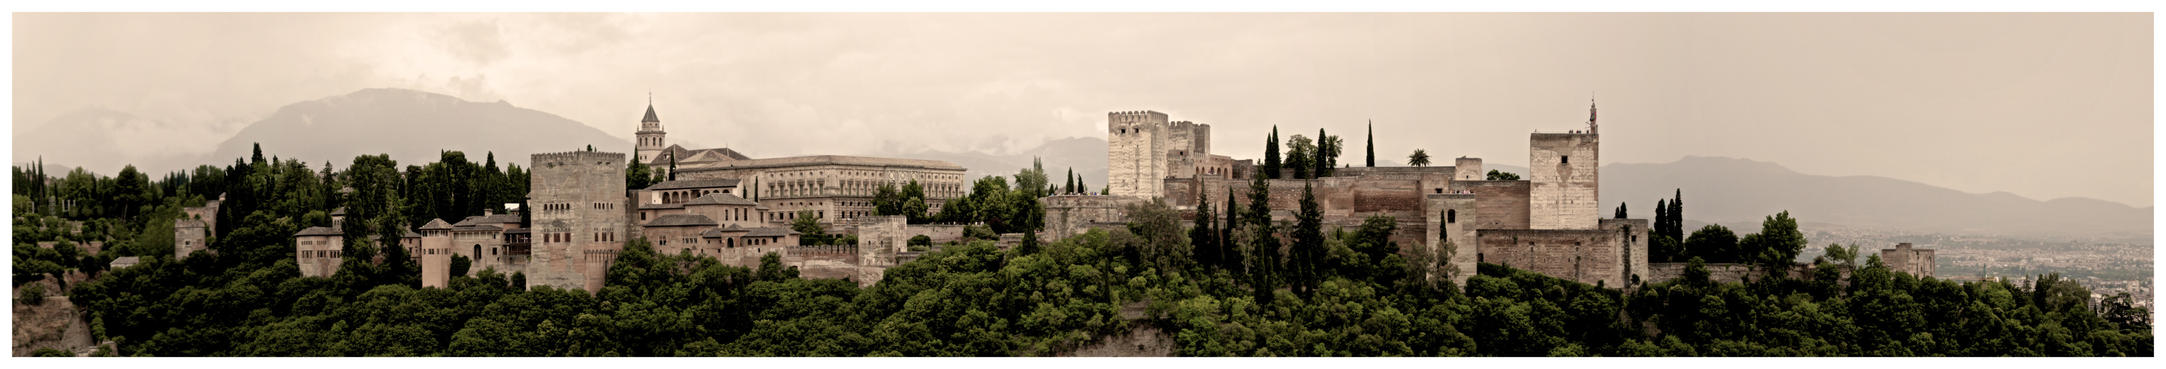 The Alhambra from the Albaicin by EMCEJ